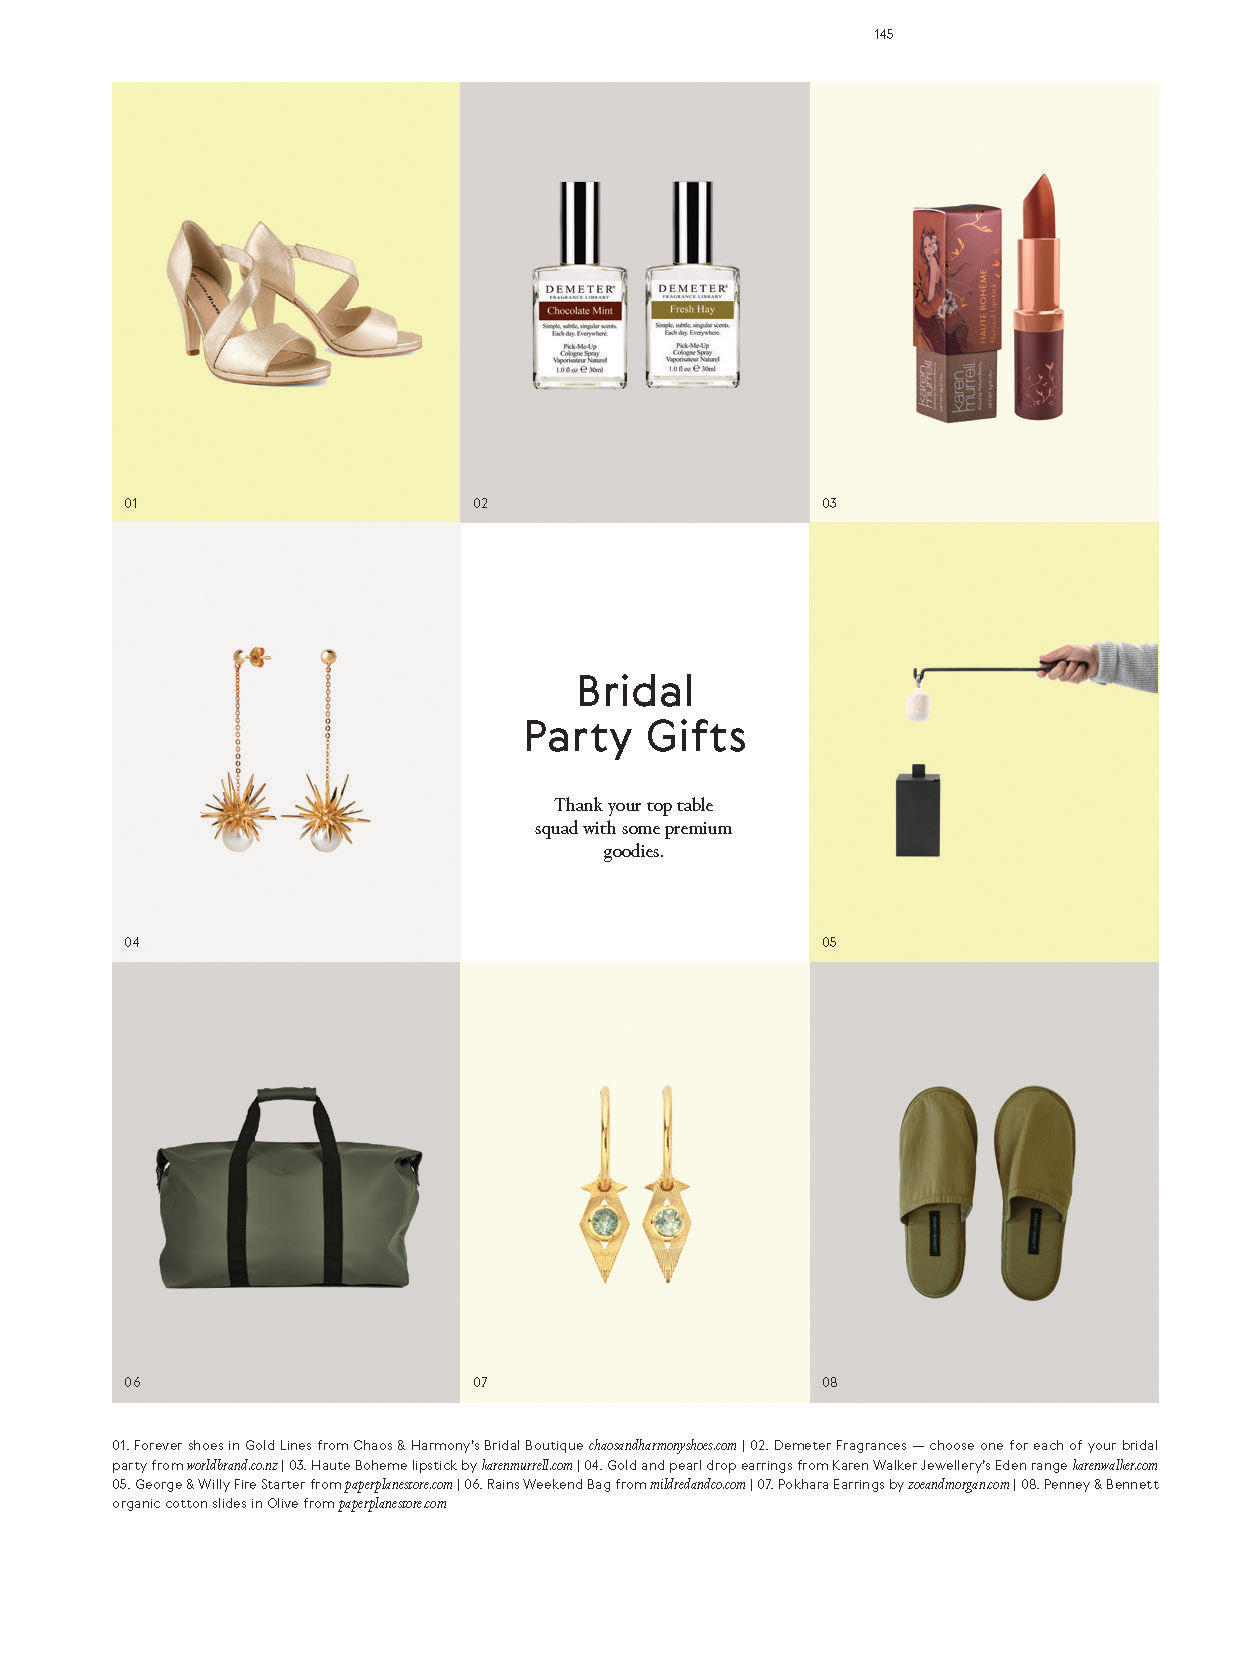 Categories: Inspiration-Bridal party gifts Issue 11